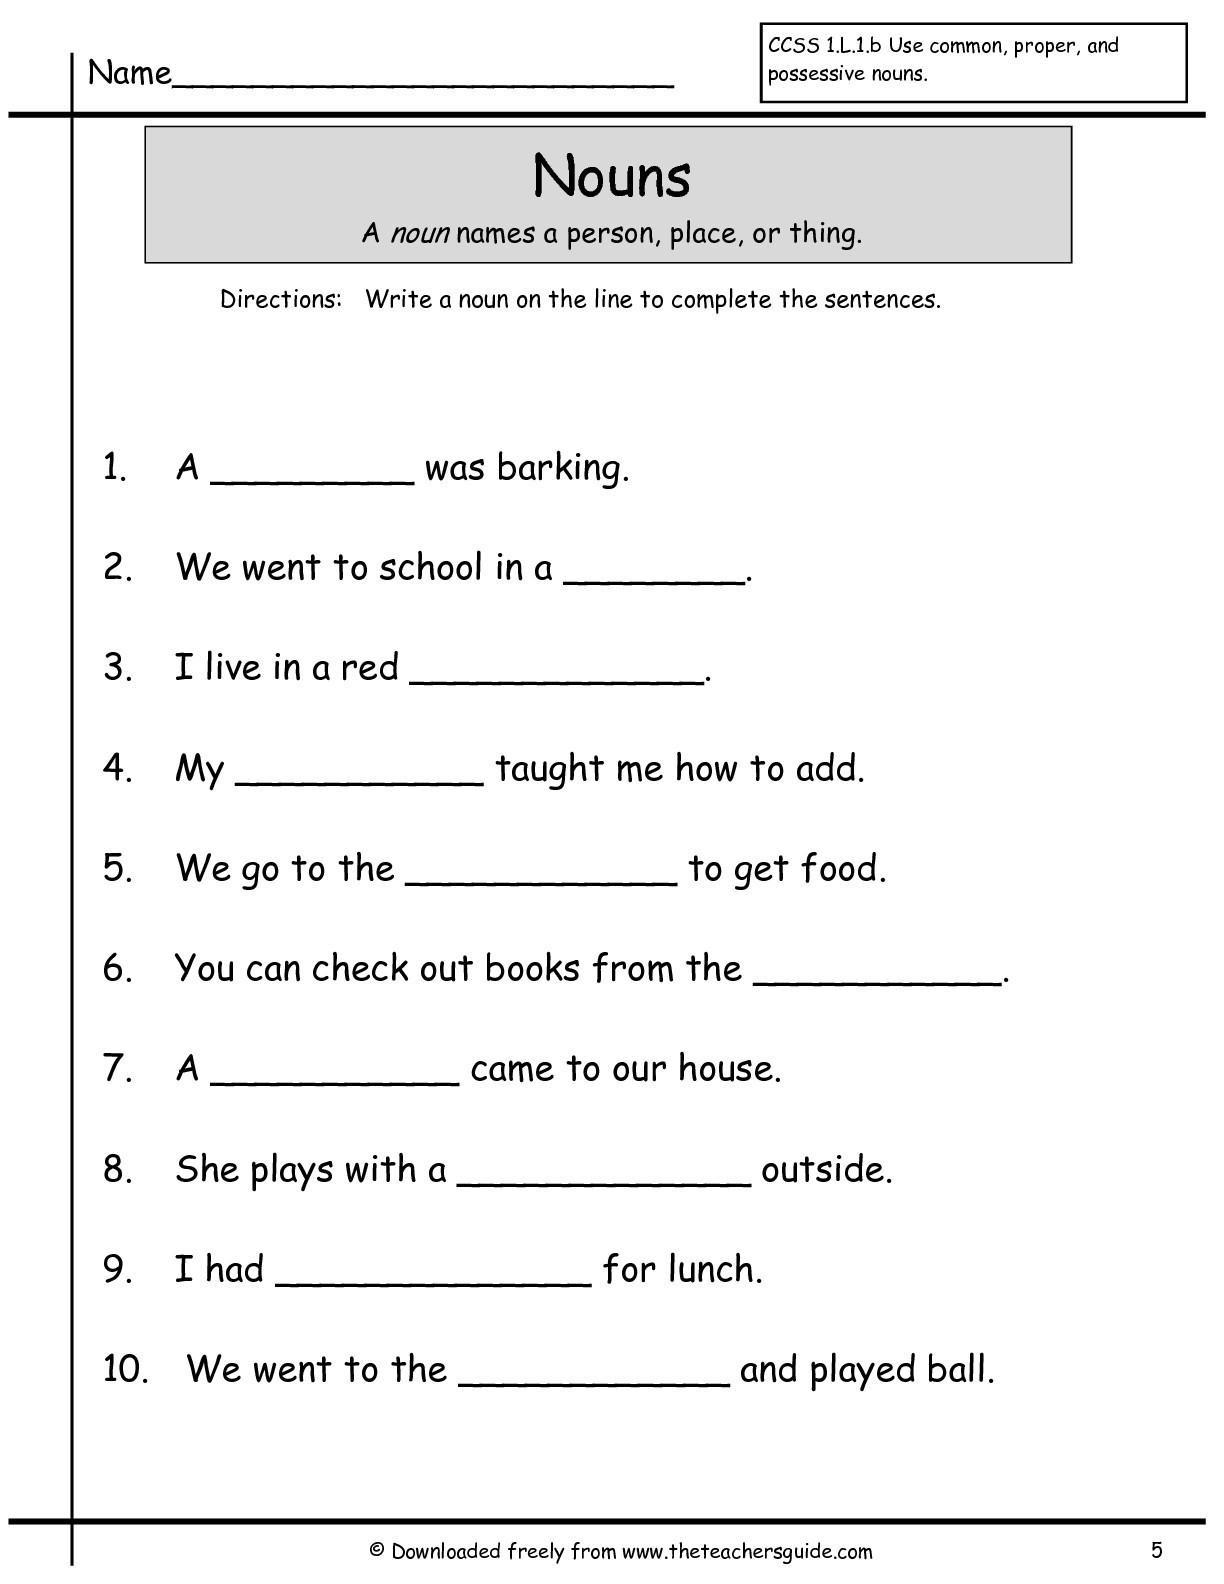 Social Studies Worksheets 8th Grade social Stu First Grade Worksheets Printable and Stu S 1st